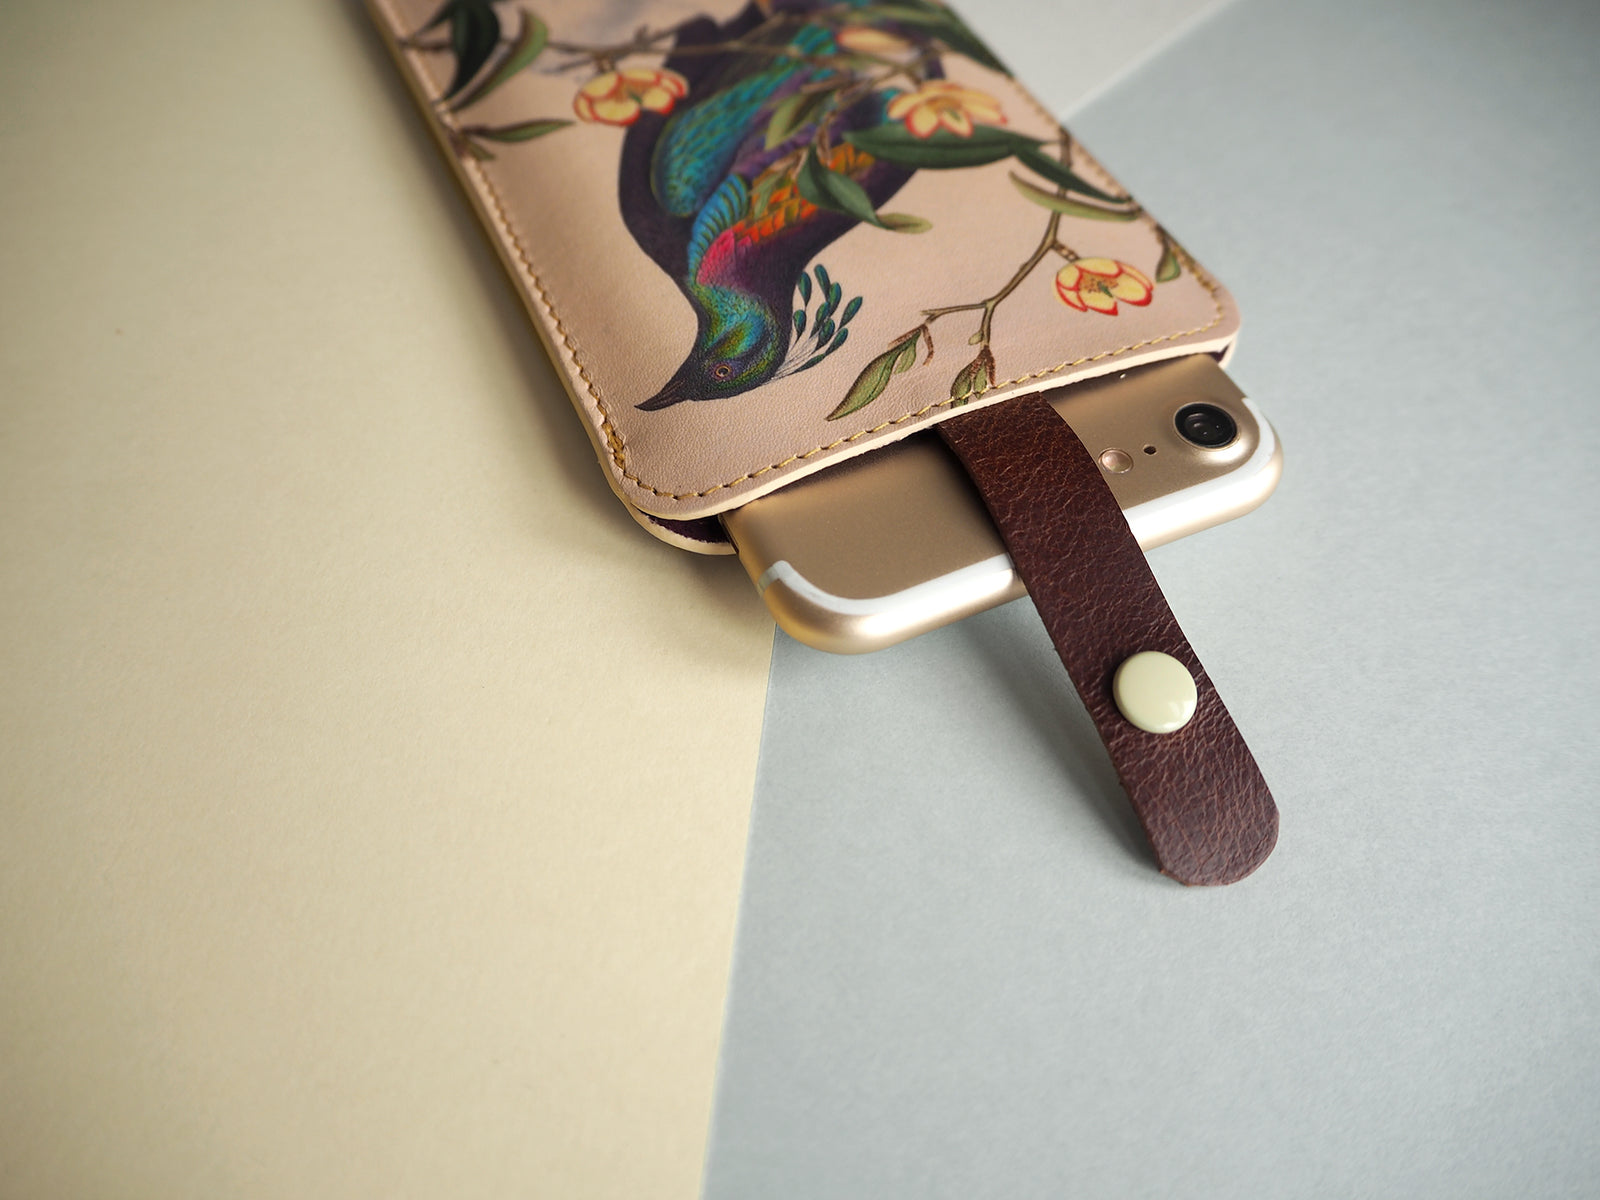 Leather phone case sleeve. Printed designer smartphone cases for iPhone, Samsung Galaxy and all smartphone models.